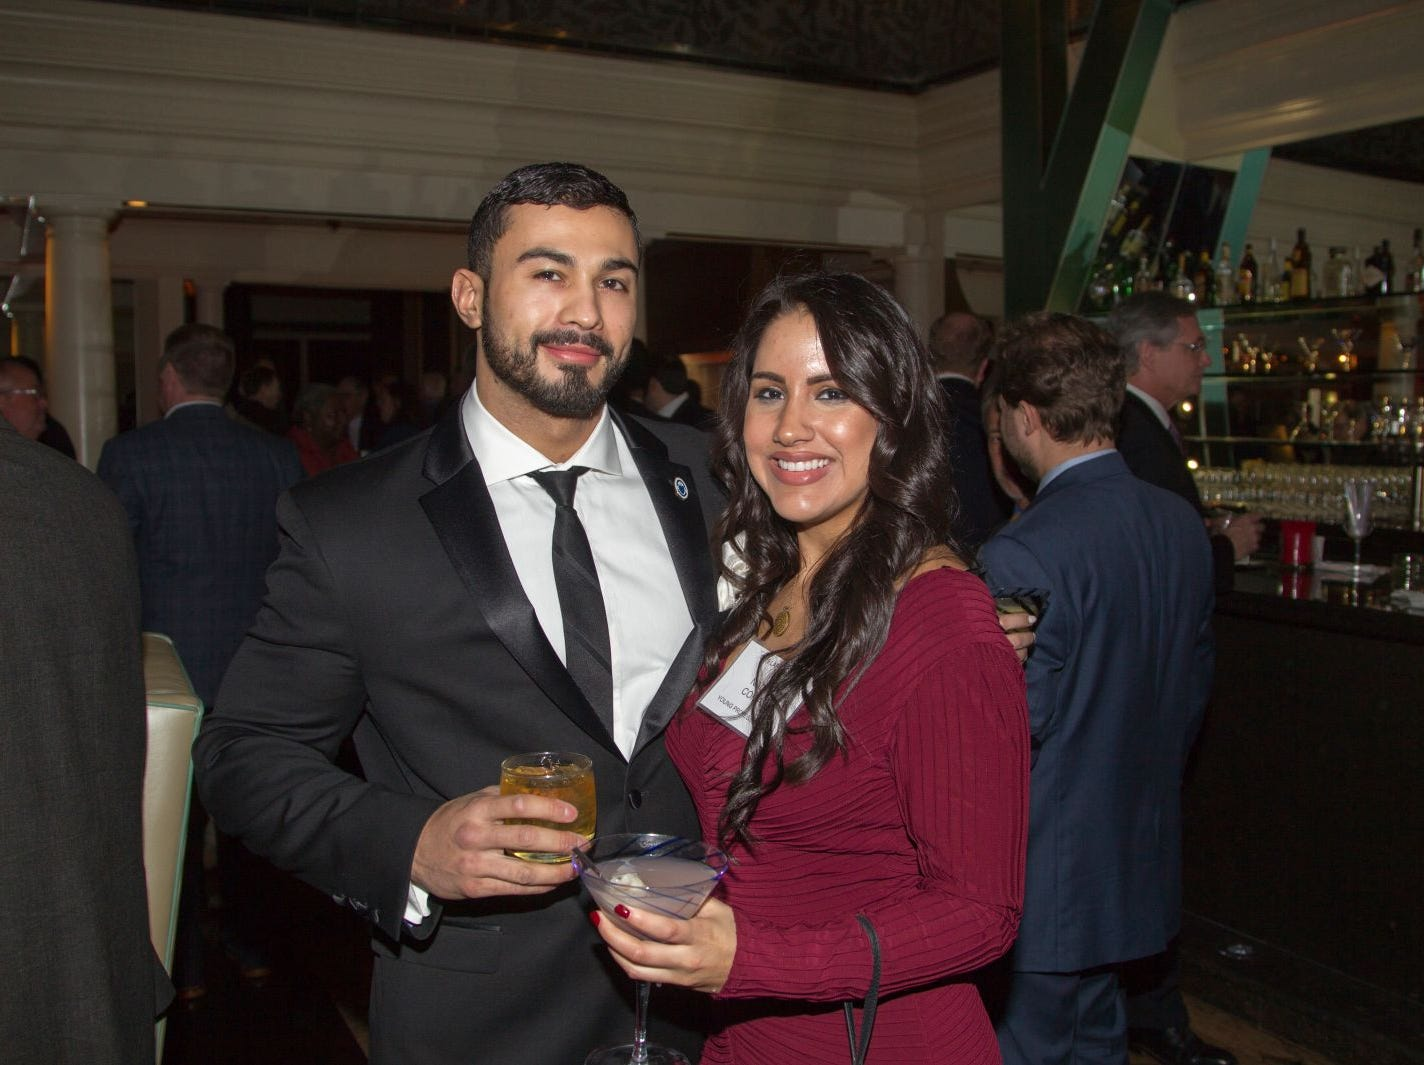 Cory Magrys, Nadya Comas. Eva's Village hosted its second annual Lawyers, Accountants and Financial Professionals Benefit Dinner at Westmount Country Club in Woodland Park. 02/21/2019